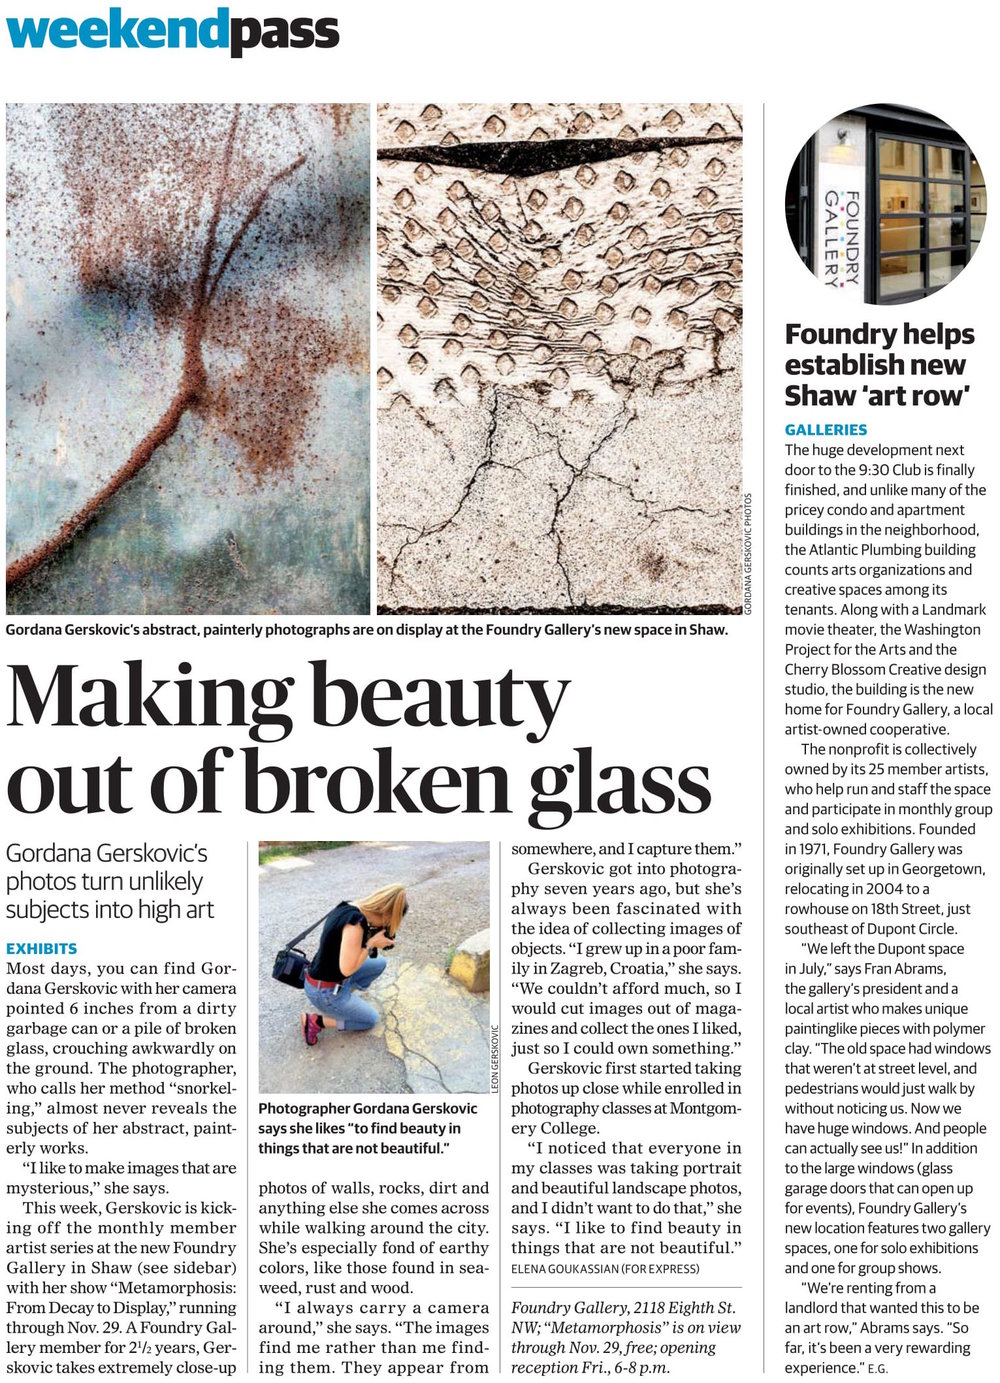 https://www.washingtonpost.com/express/wp/2015/11/04/this-local-photographer-makes-beauty-out-of-broken-glass-and-cracks-in-the-sidewalk    https://www.washingtonpost.com/express/wp/2015/11/04/the-relocated-foundry-gallery-helps-establish-shaws-new-art-row